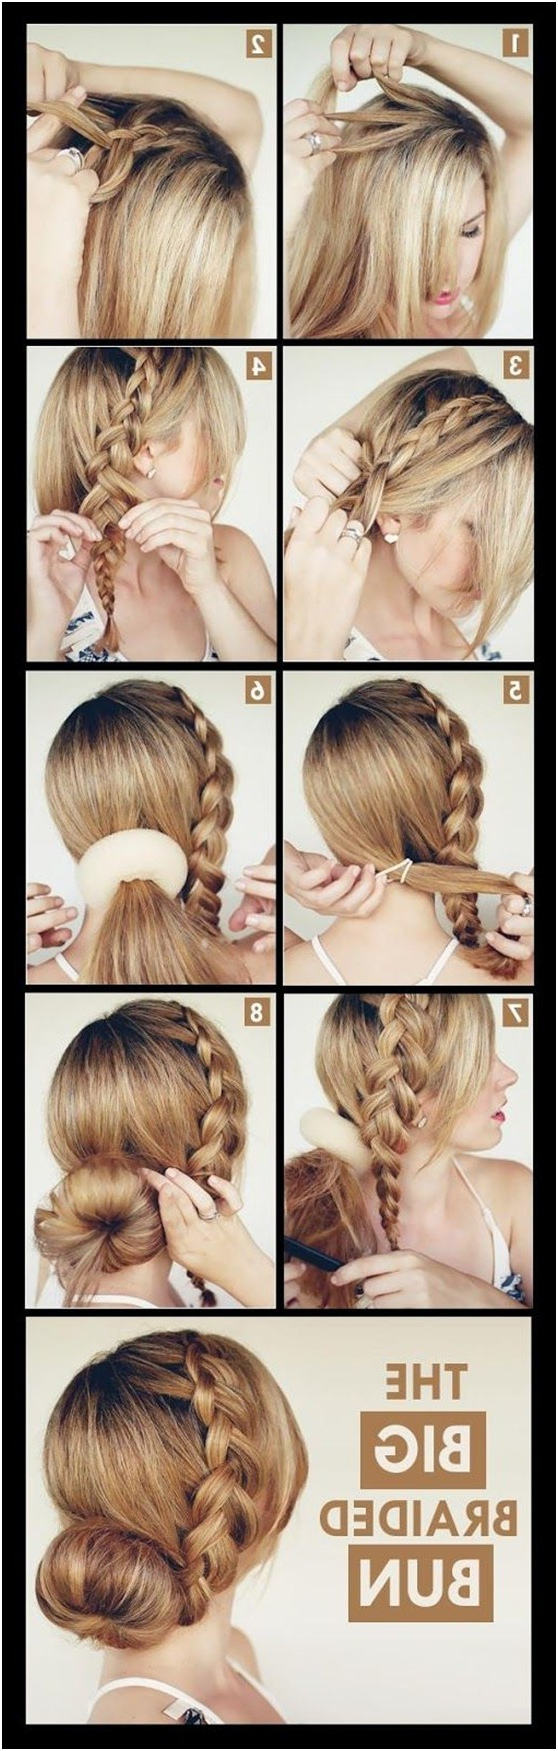 15 Braided Updo Hairstyles Tutorials – Pretty Designs Intended For Favorite Twisted Rope Braid Updo Hairstyles (View 1 of 20)